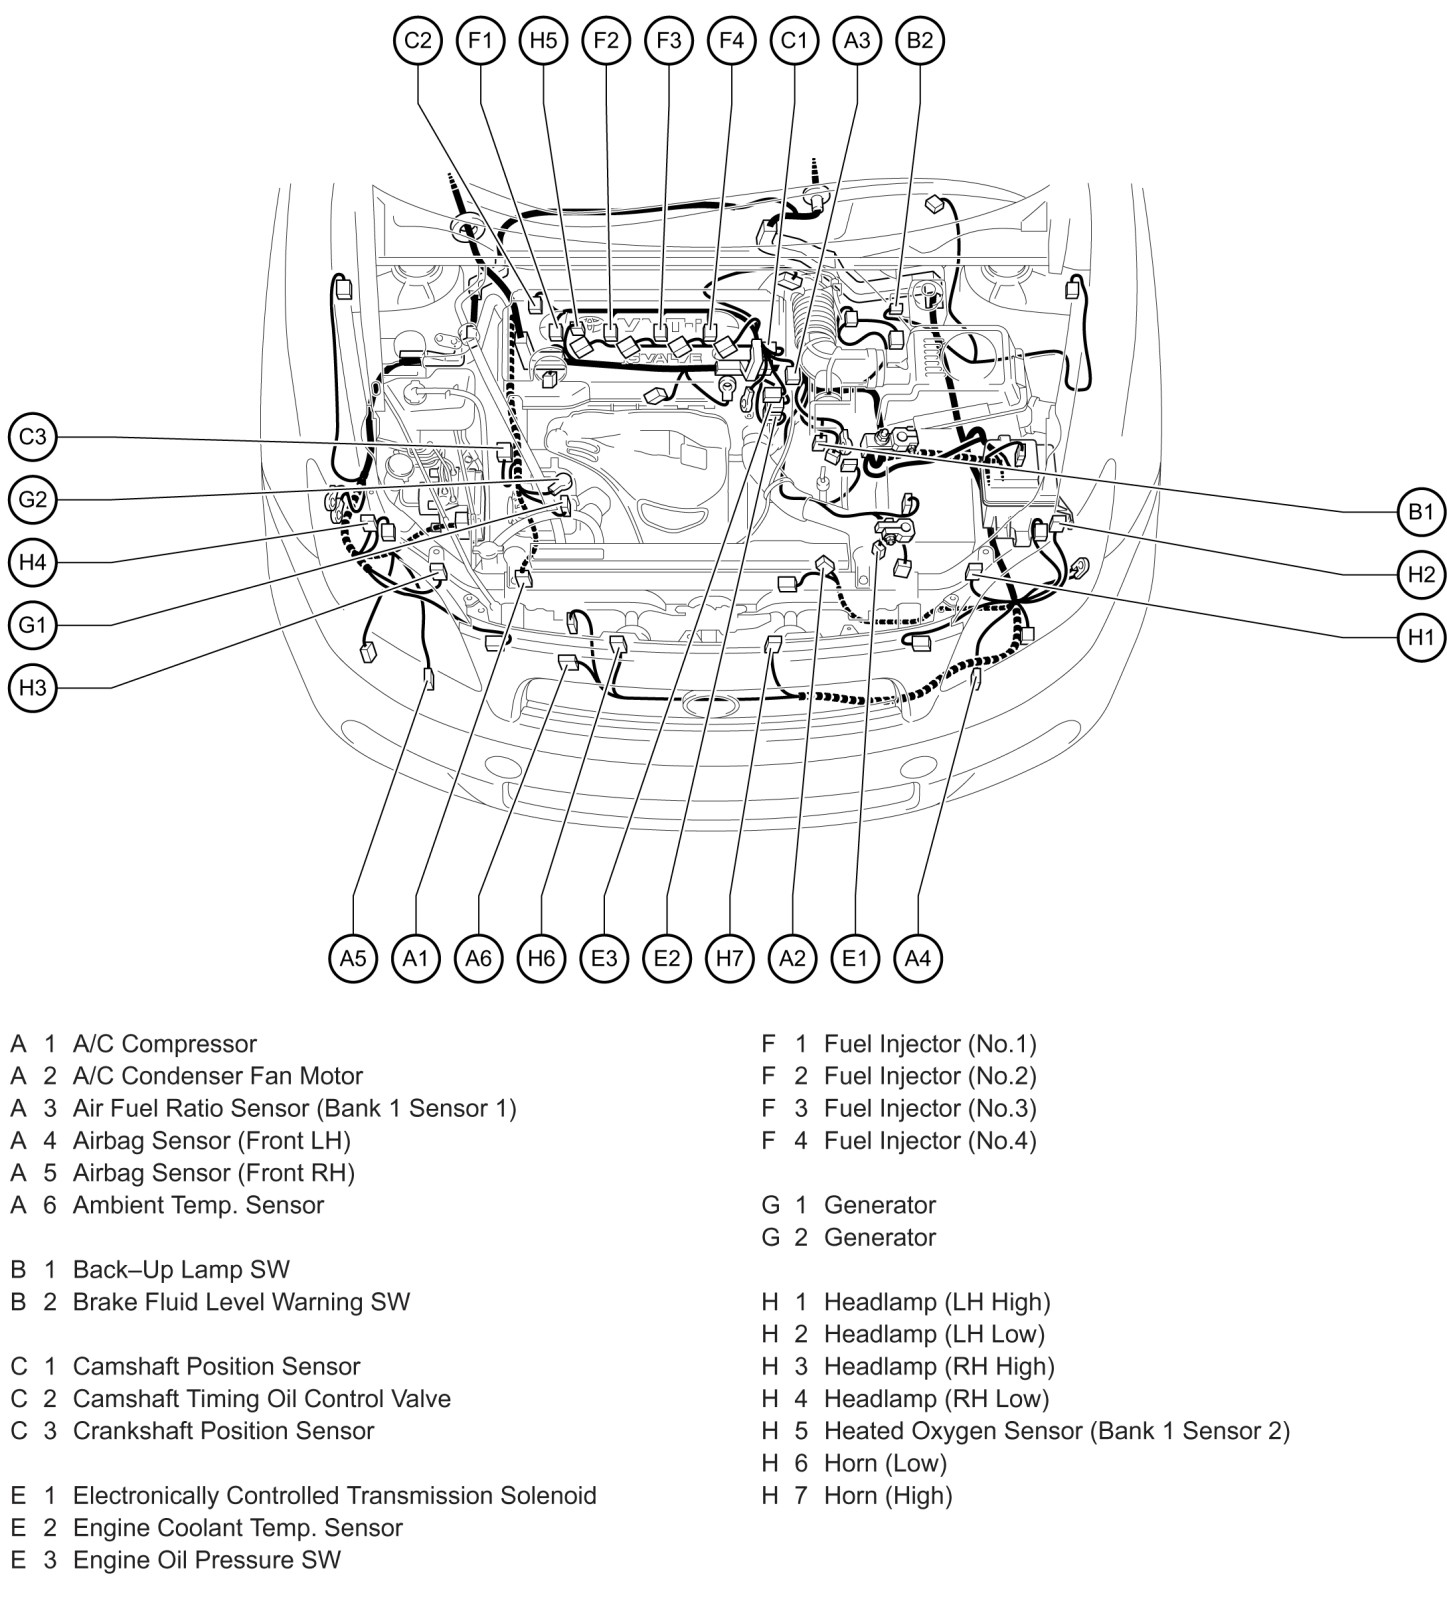 fuse box cadillac cts trusted wiring diagram air bag block